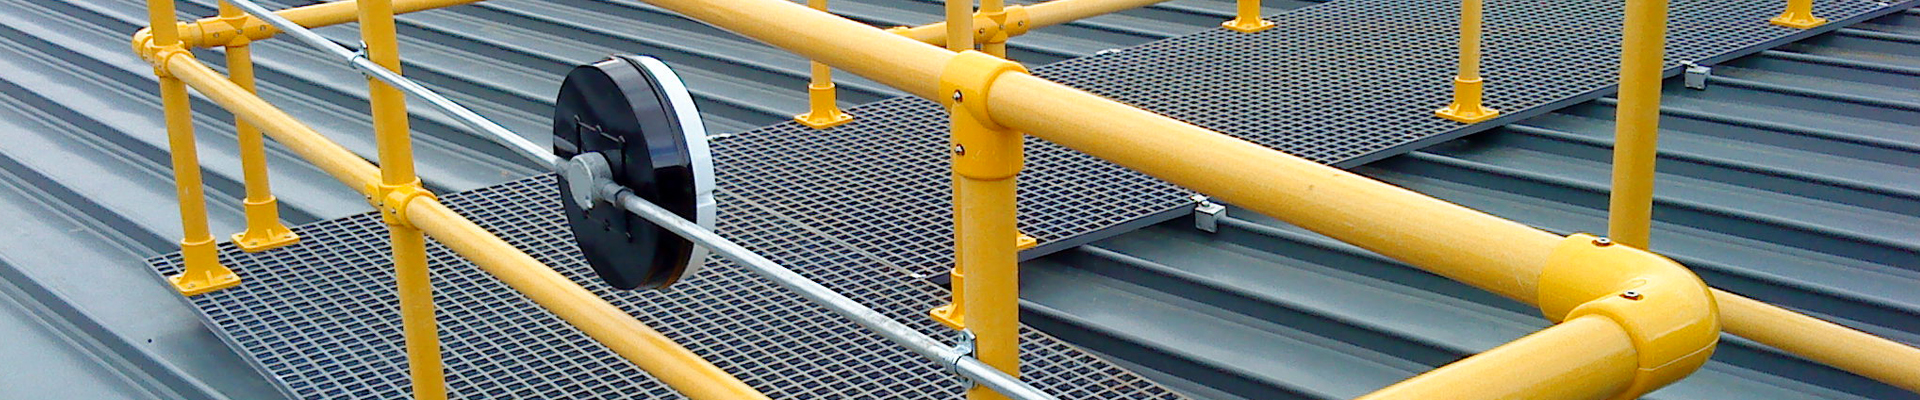 GRP Walkways & Grating Systems